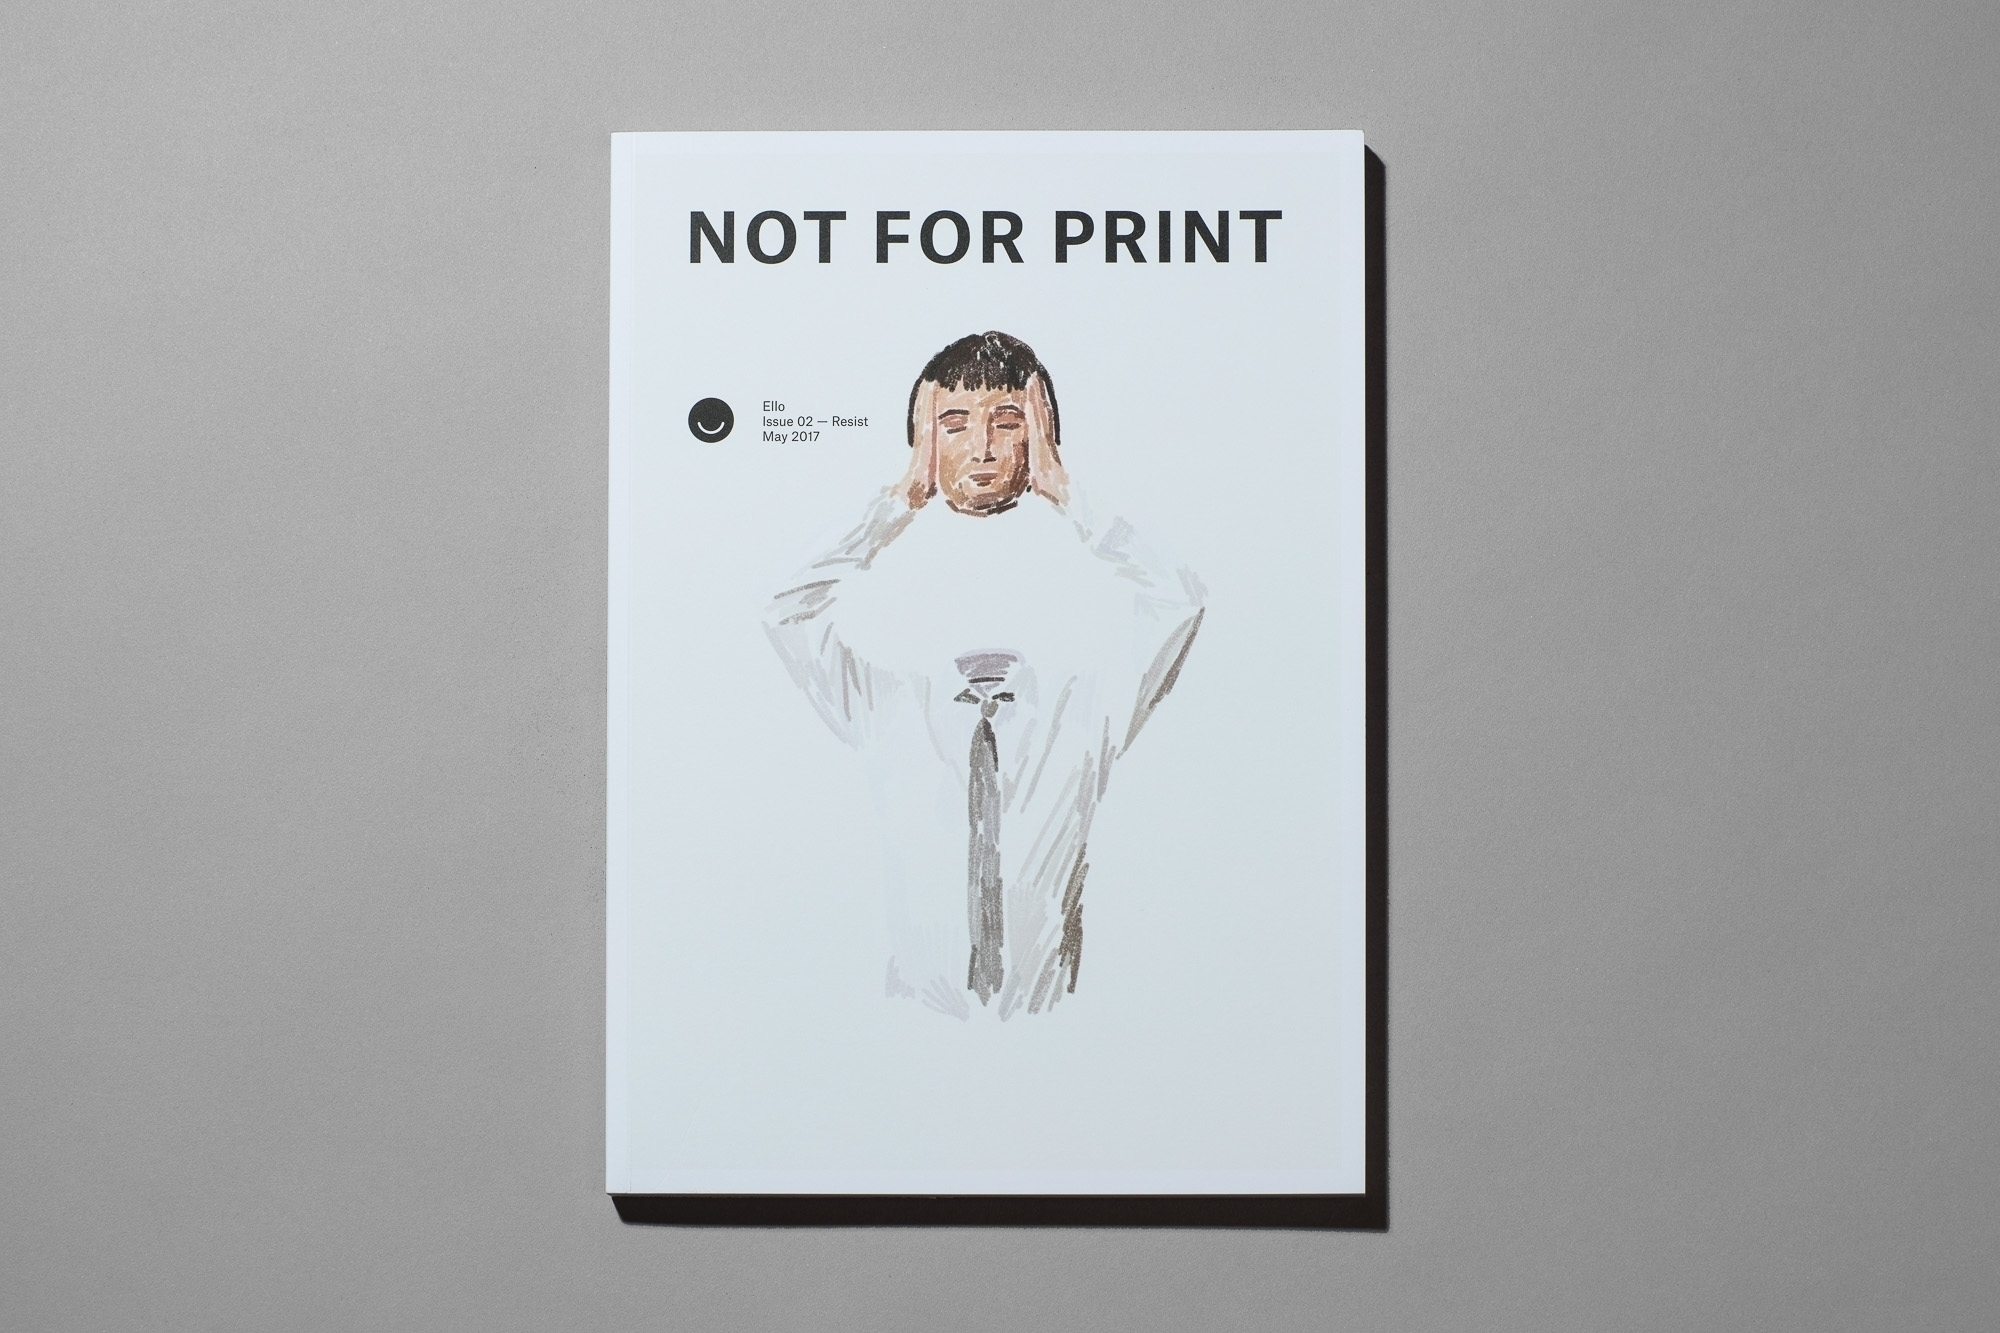 Print, Issue 02 Giveaway collab - notforprint | ello